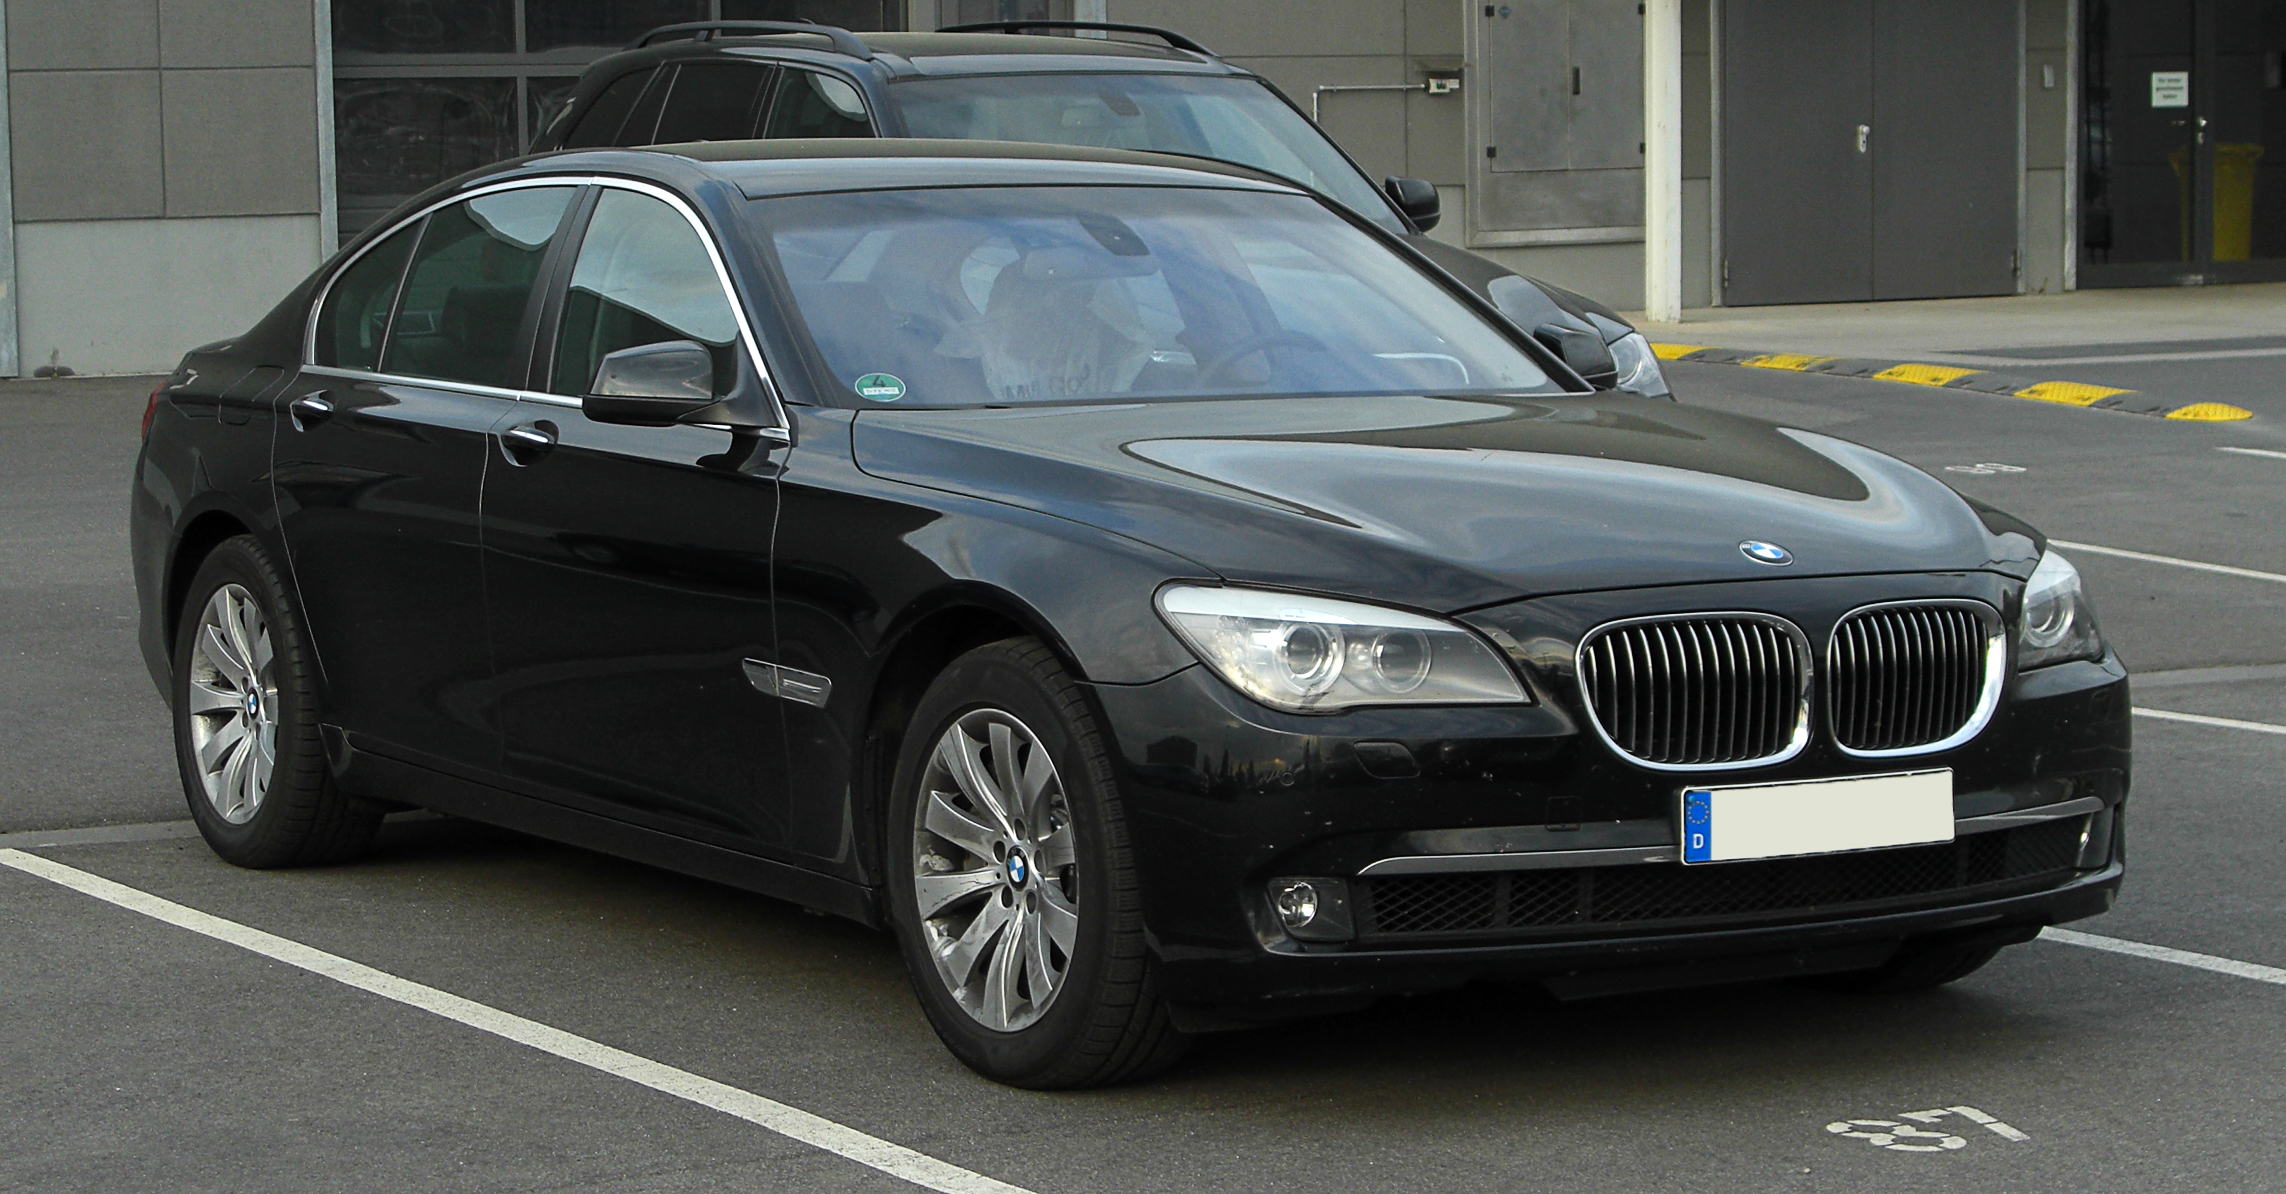 Permalink to Bmw 7 Series